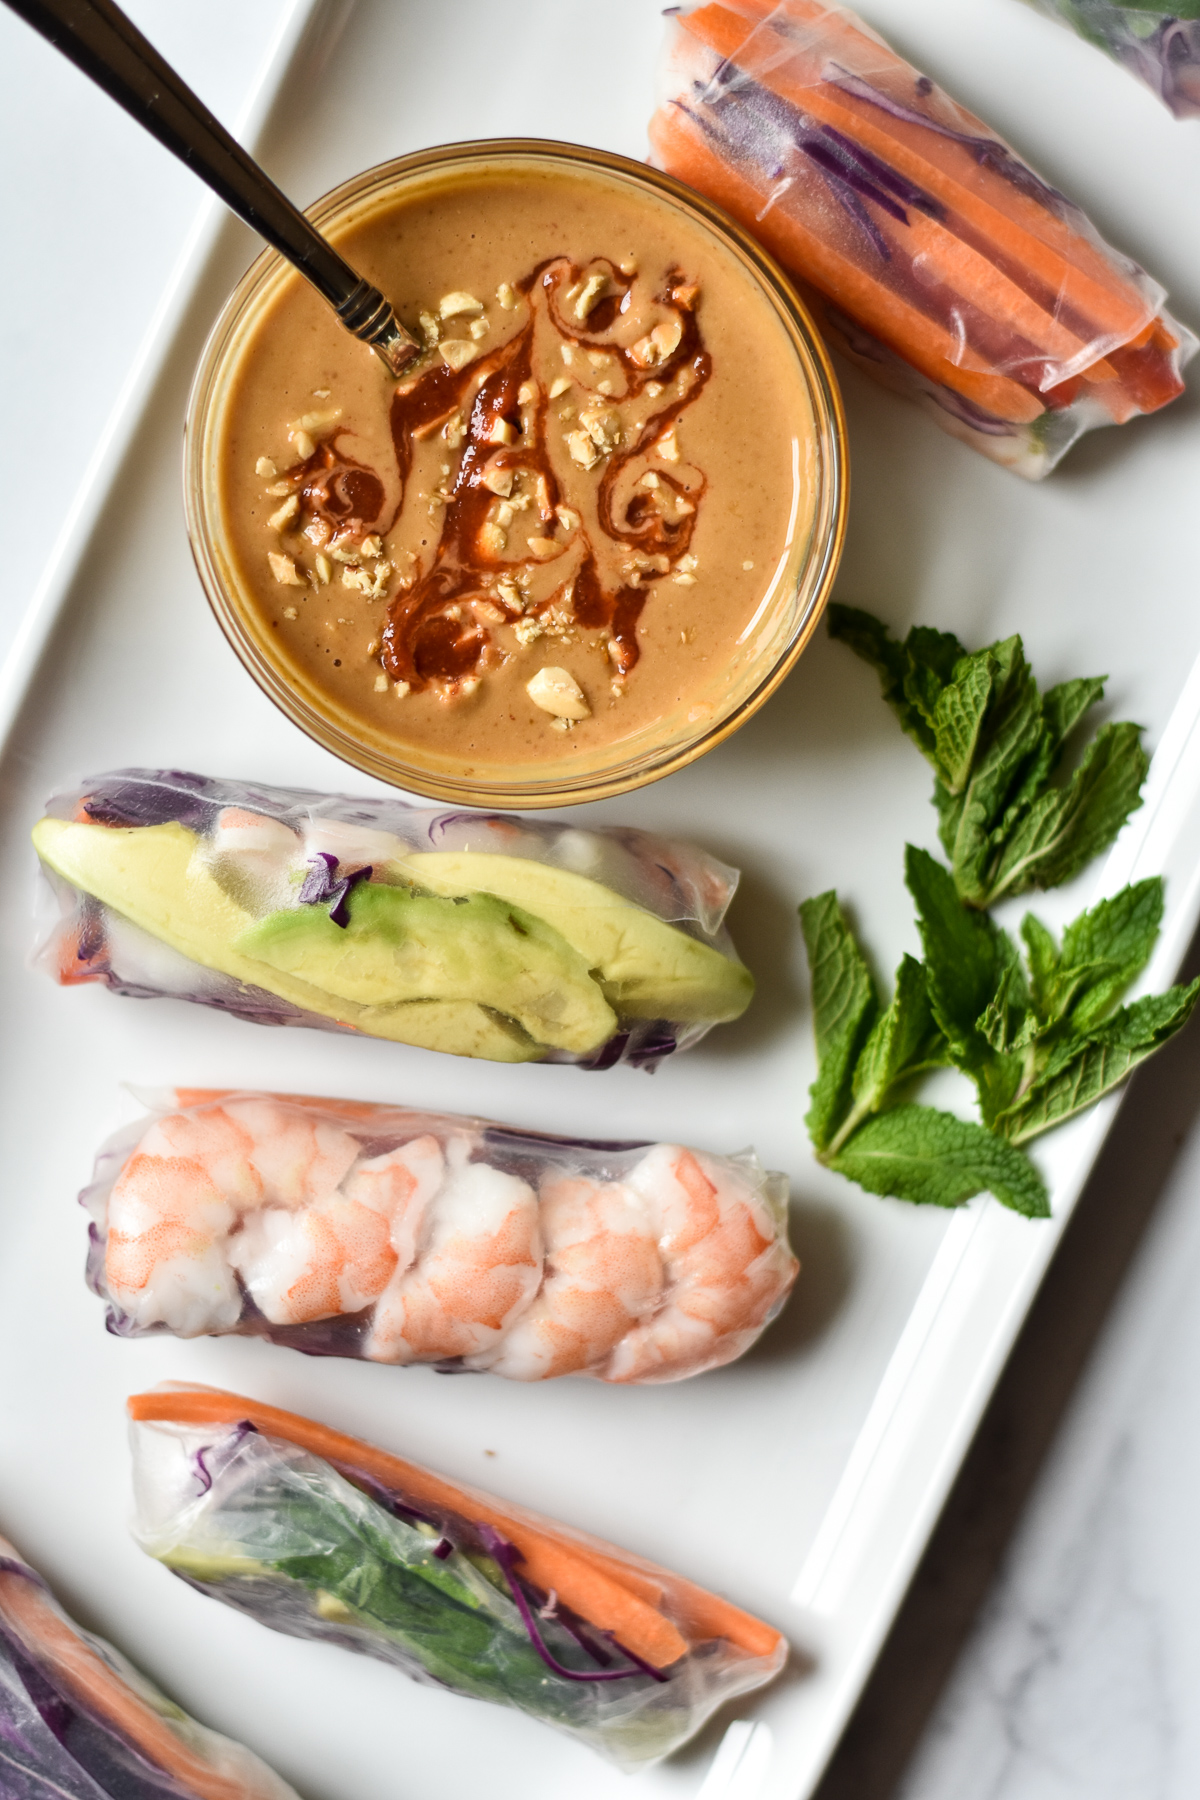 summer rolls on a platter with peanut dipping sauce and mint leaves